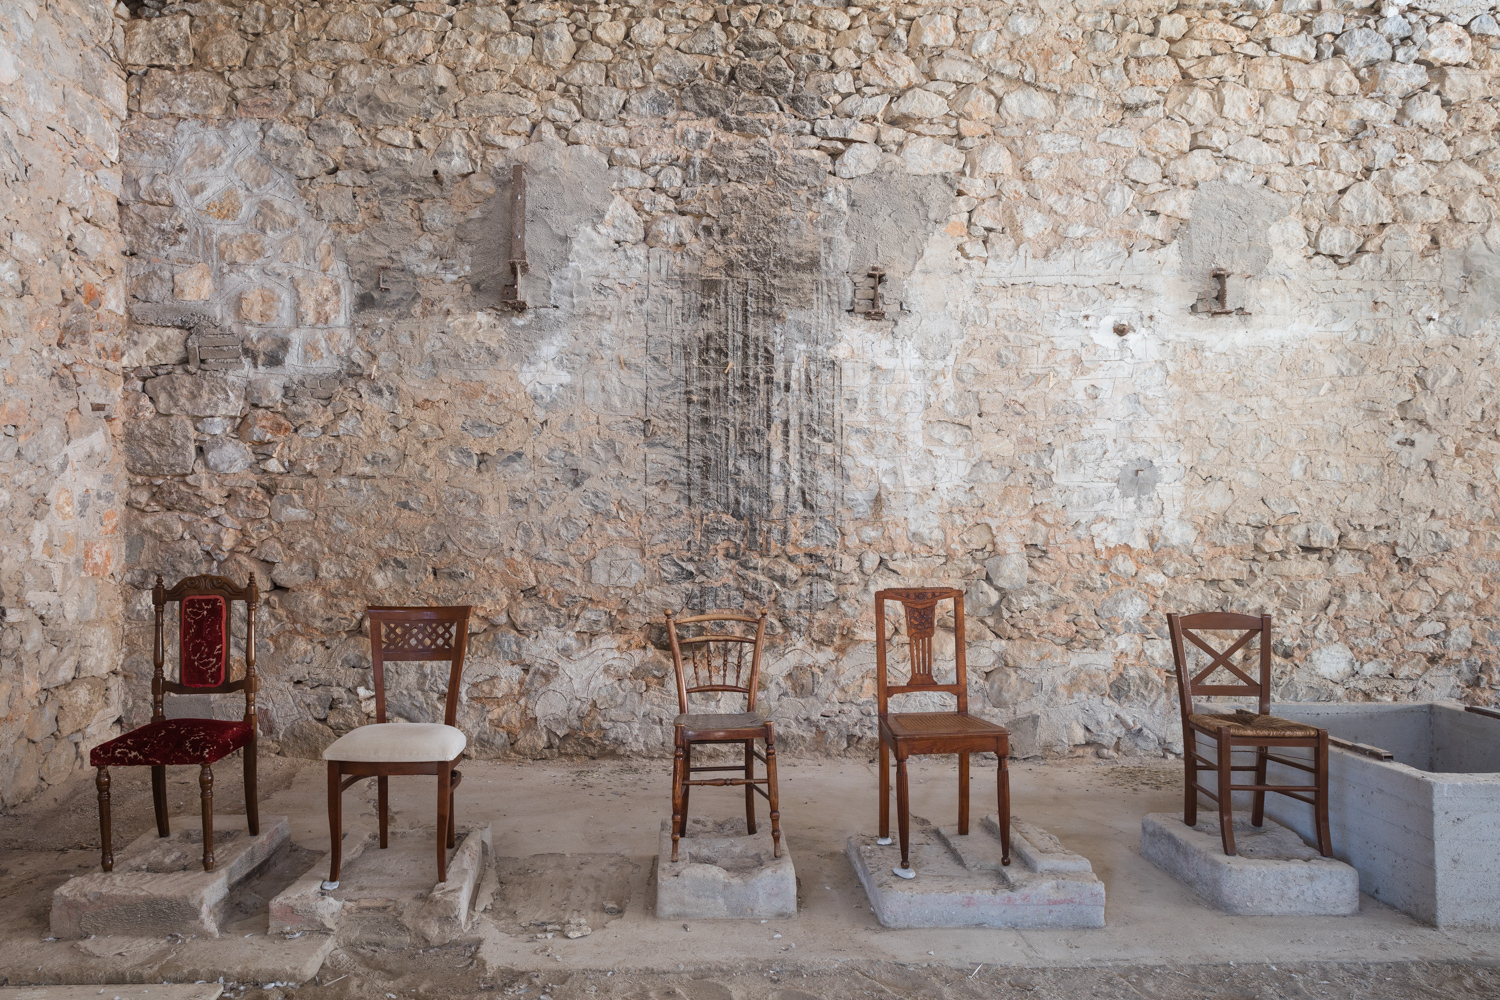 ReUse Heritage Chairs   a project forthe  3rd HMO International HerMa Conference